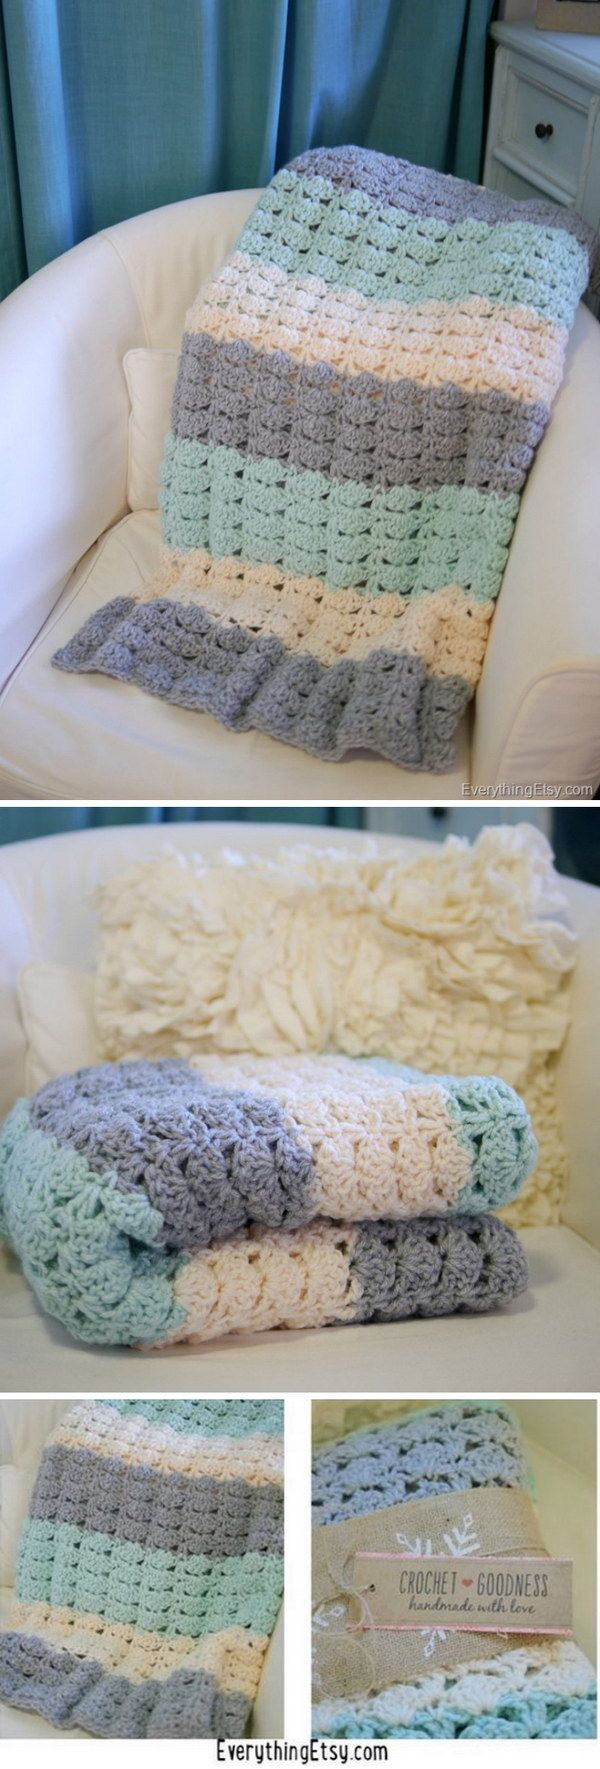 Best 25 easy crochet blanket ideas on pinterest easy crochet 23 free crochet blanket patterns with lots of tutorials bankloansurffo Gallery